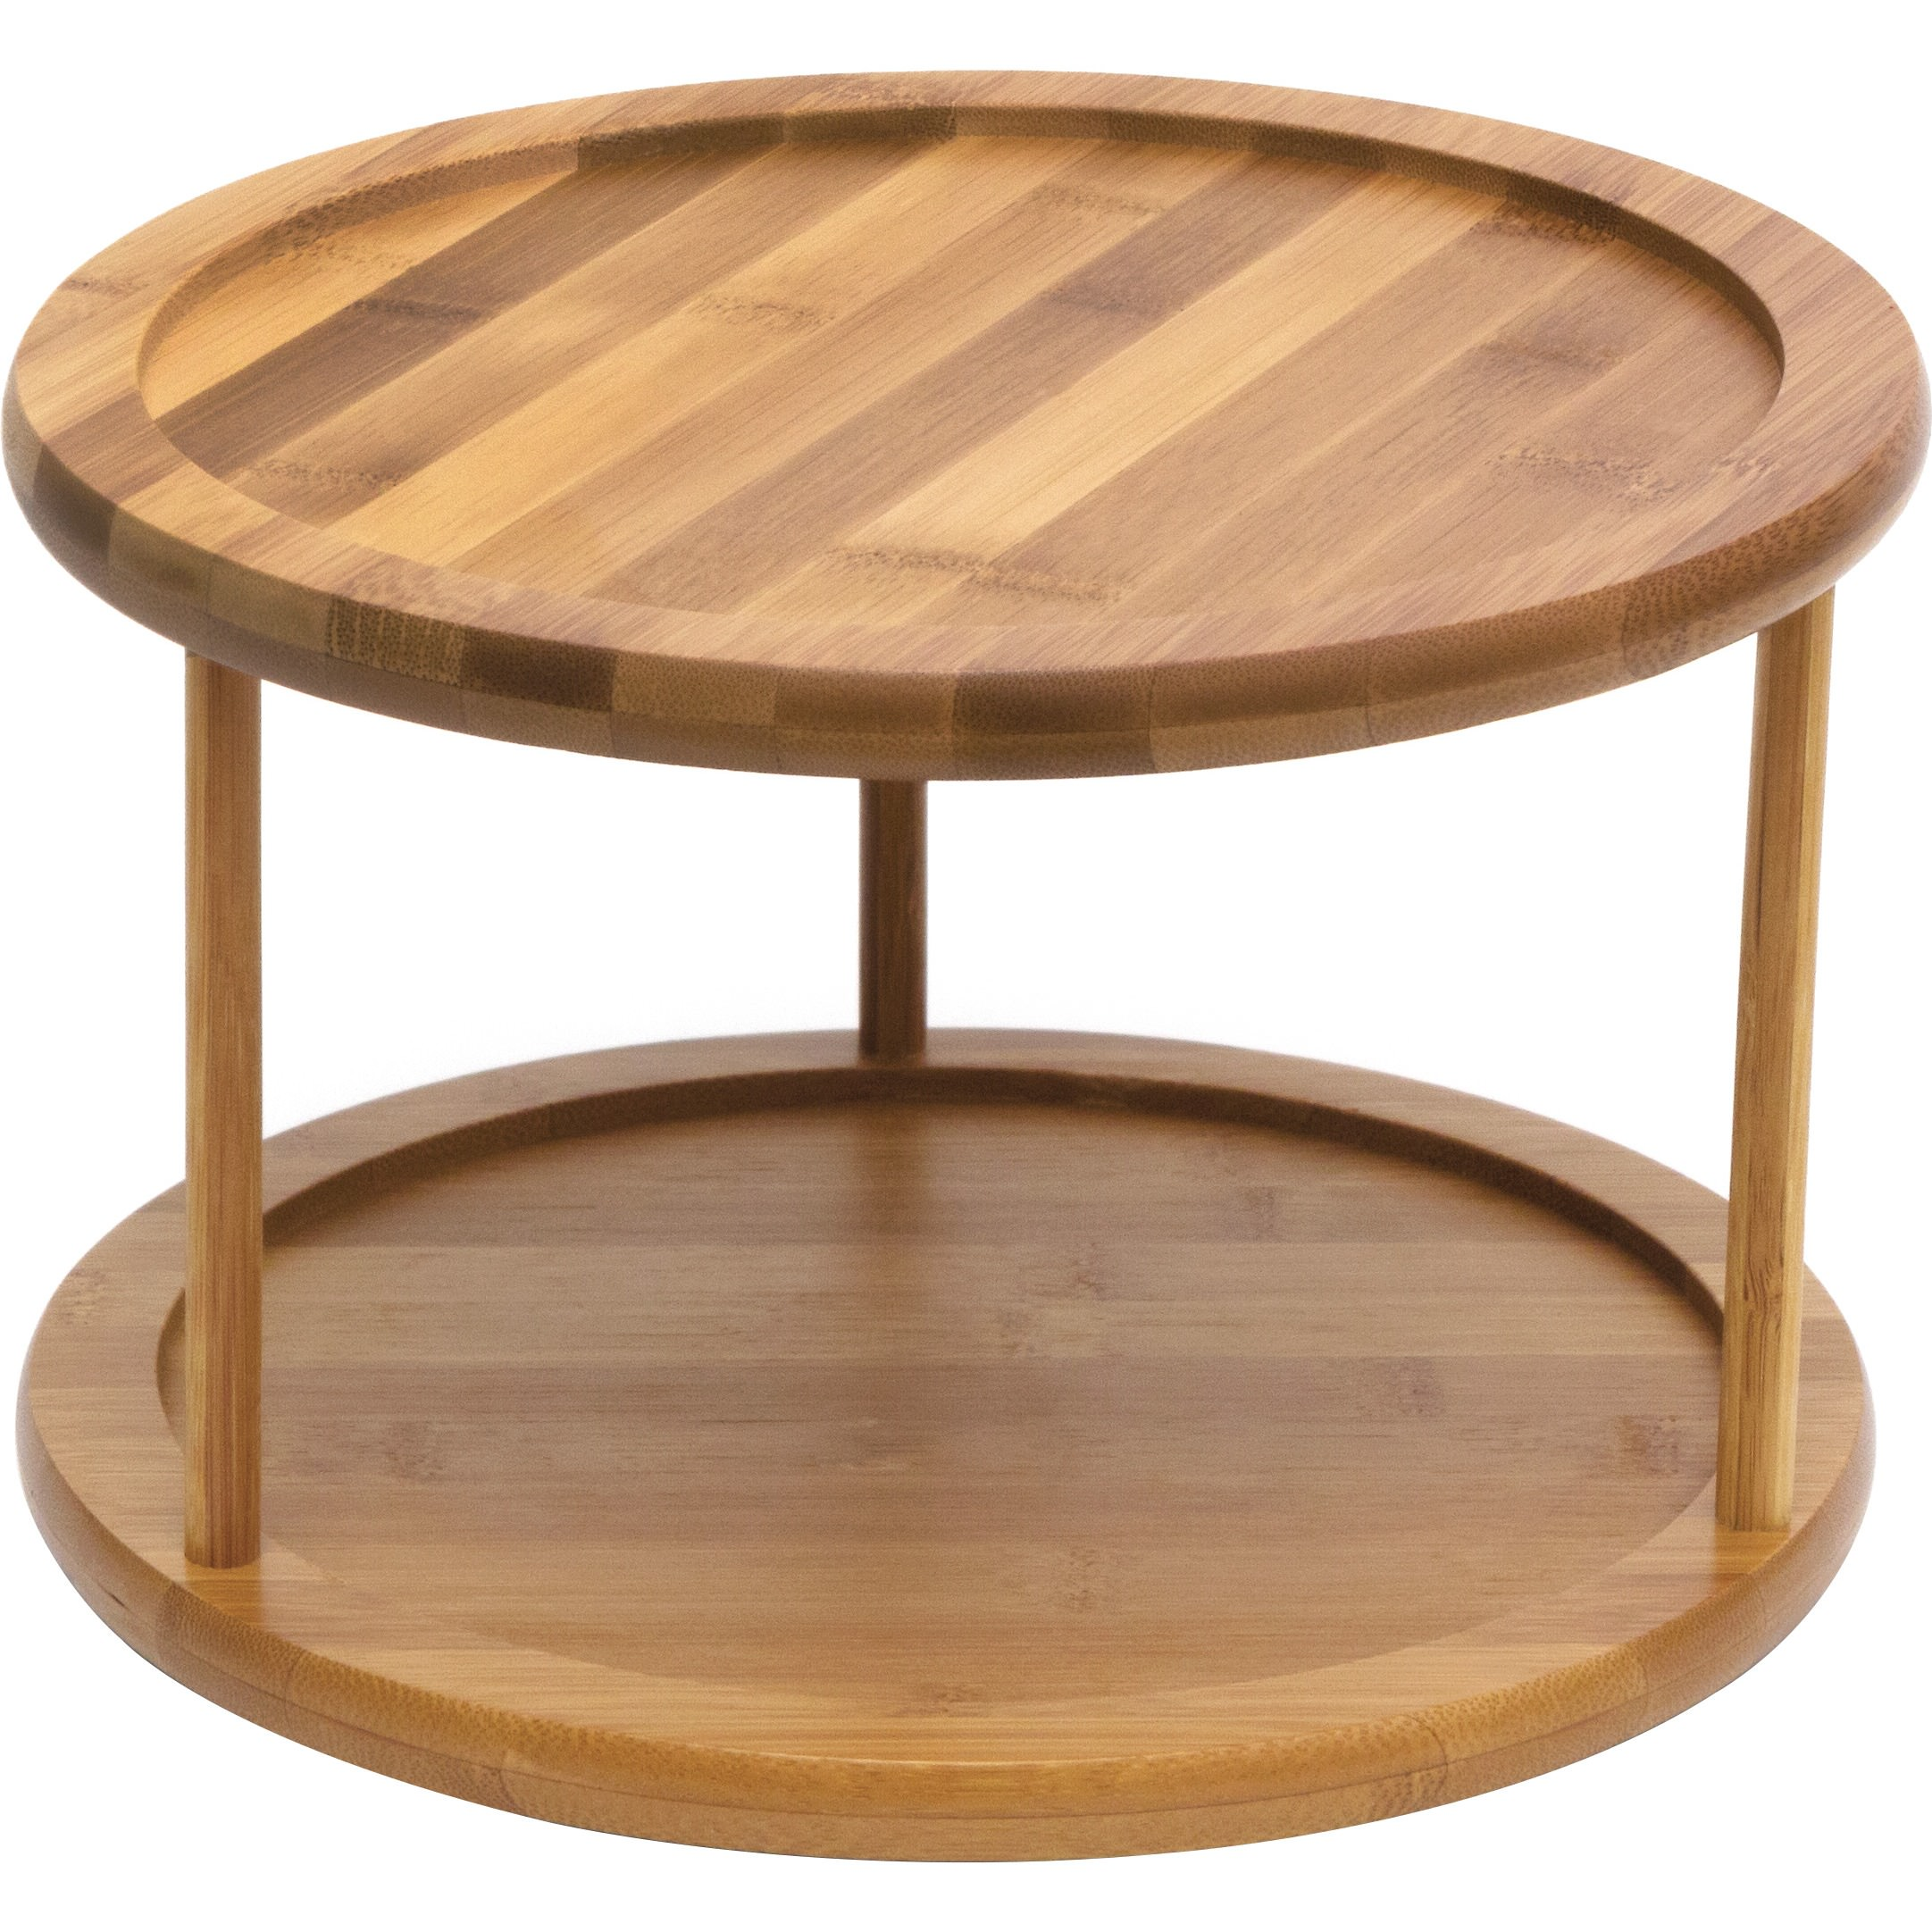 Lipper International Bamboo Turntable, 2-Tier